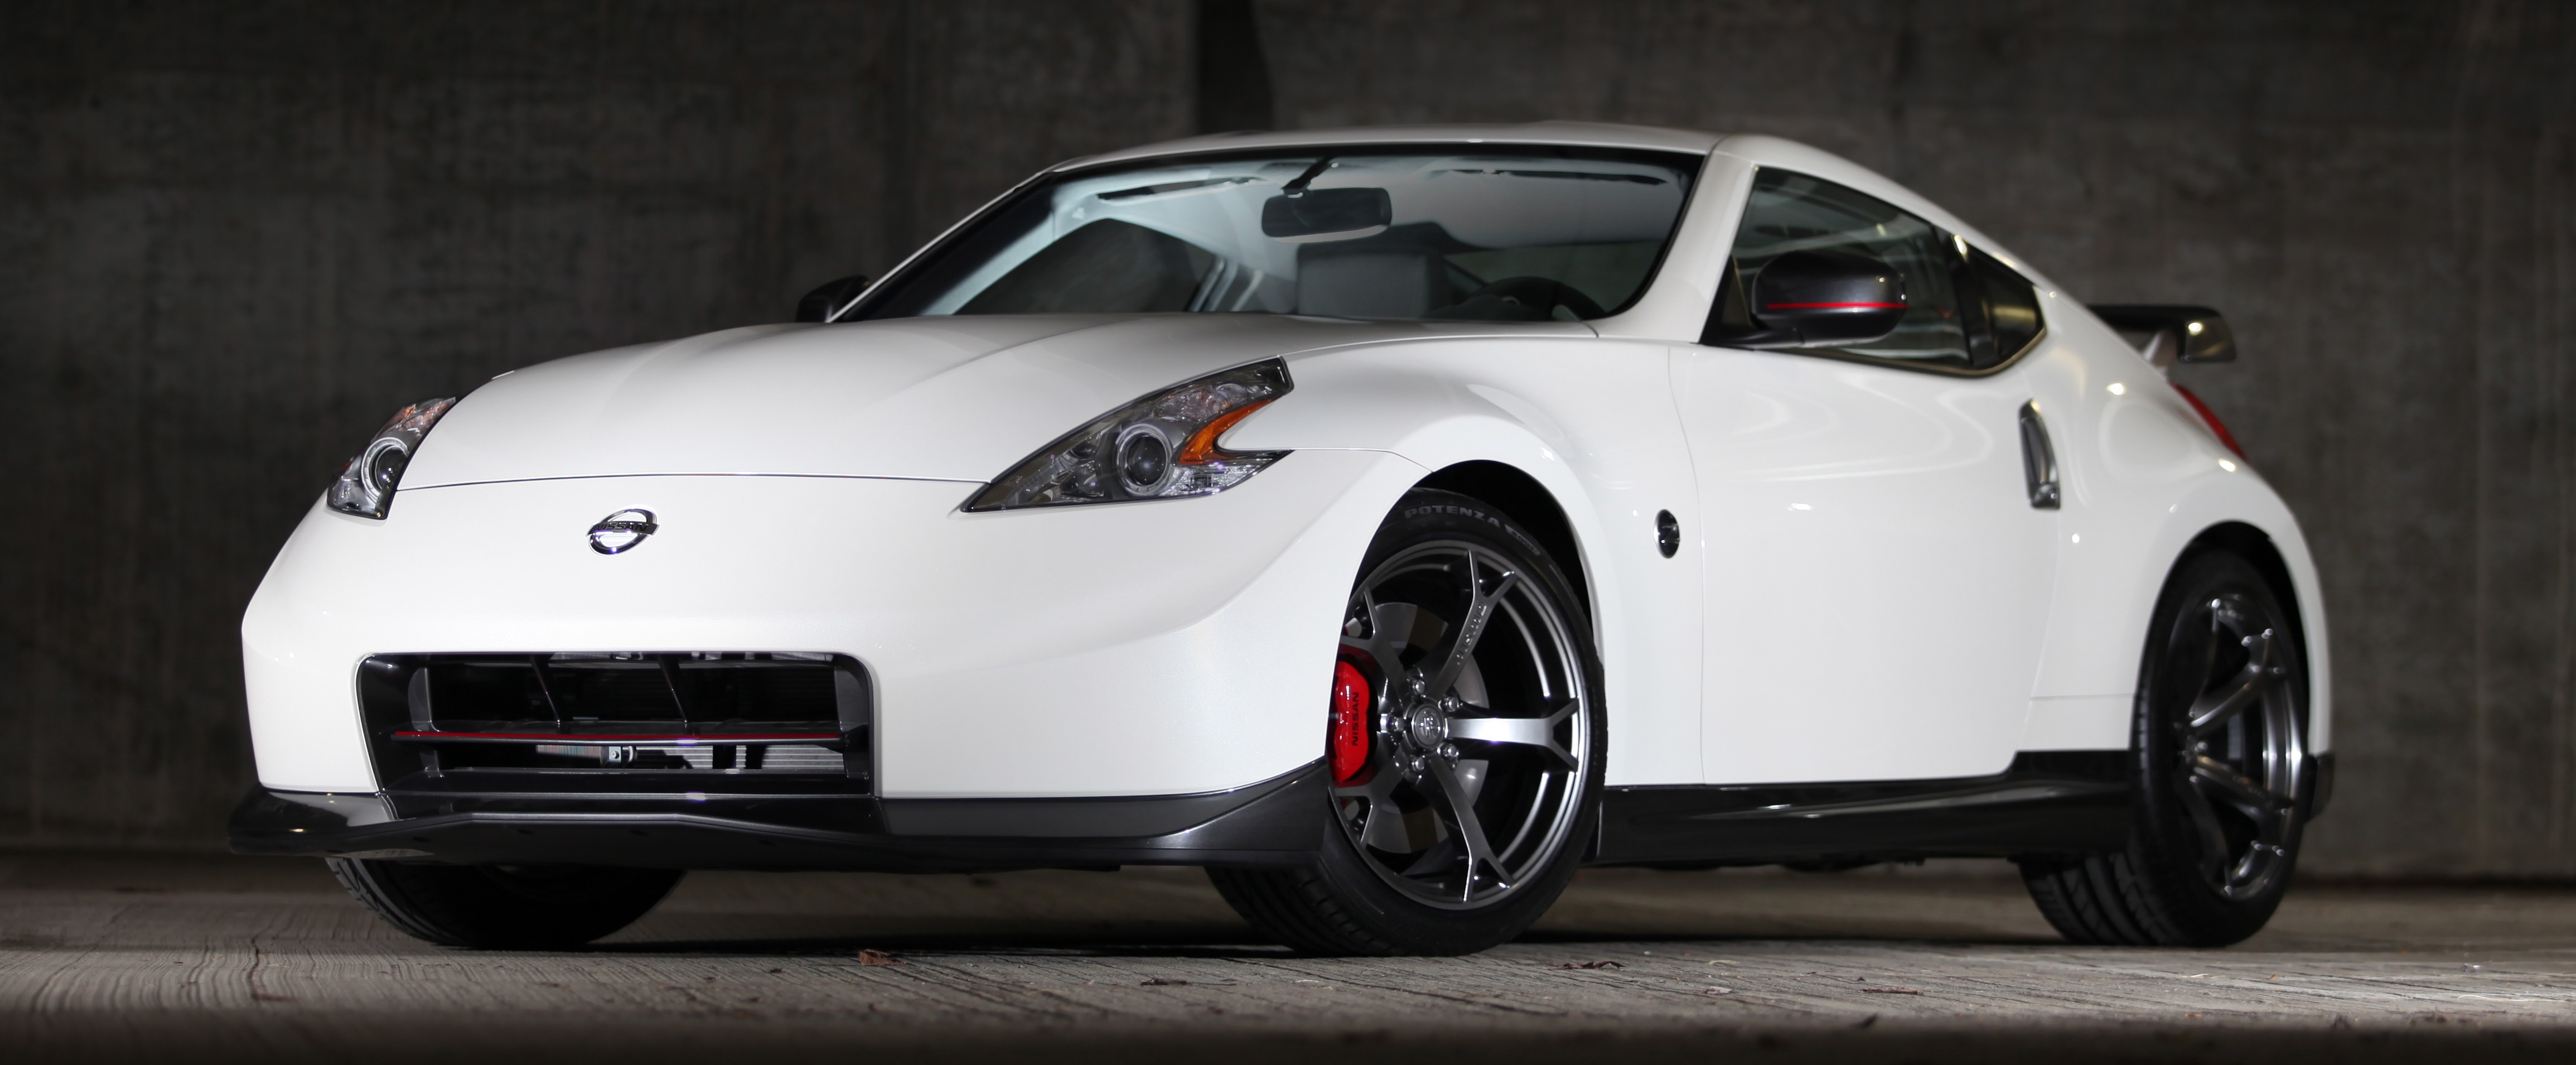 gallery nissan 370z nismo gets cosmetic add ons image 172672. Black Bedroom Furniture Sets. Home Design Ideas